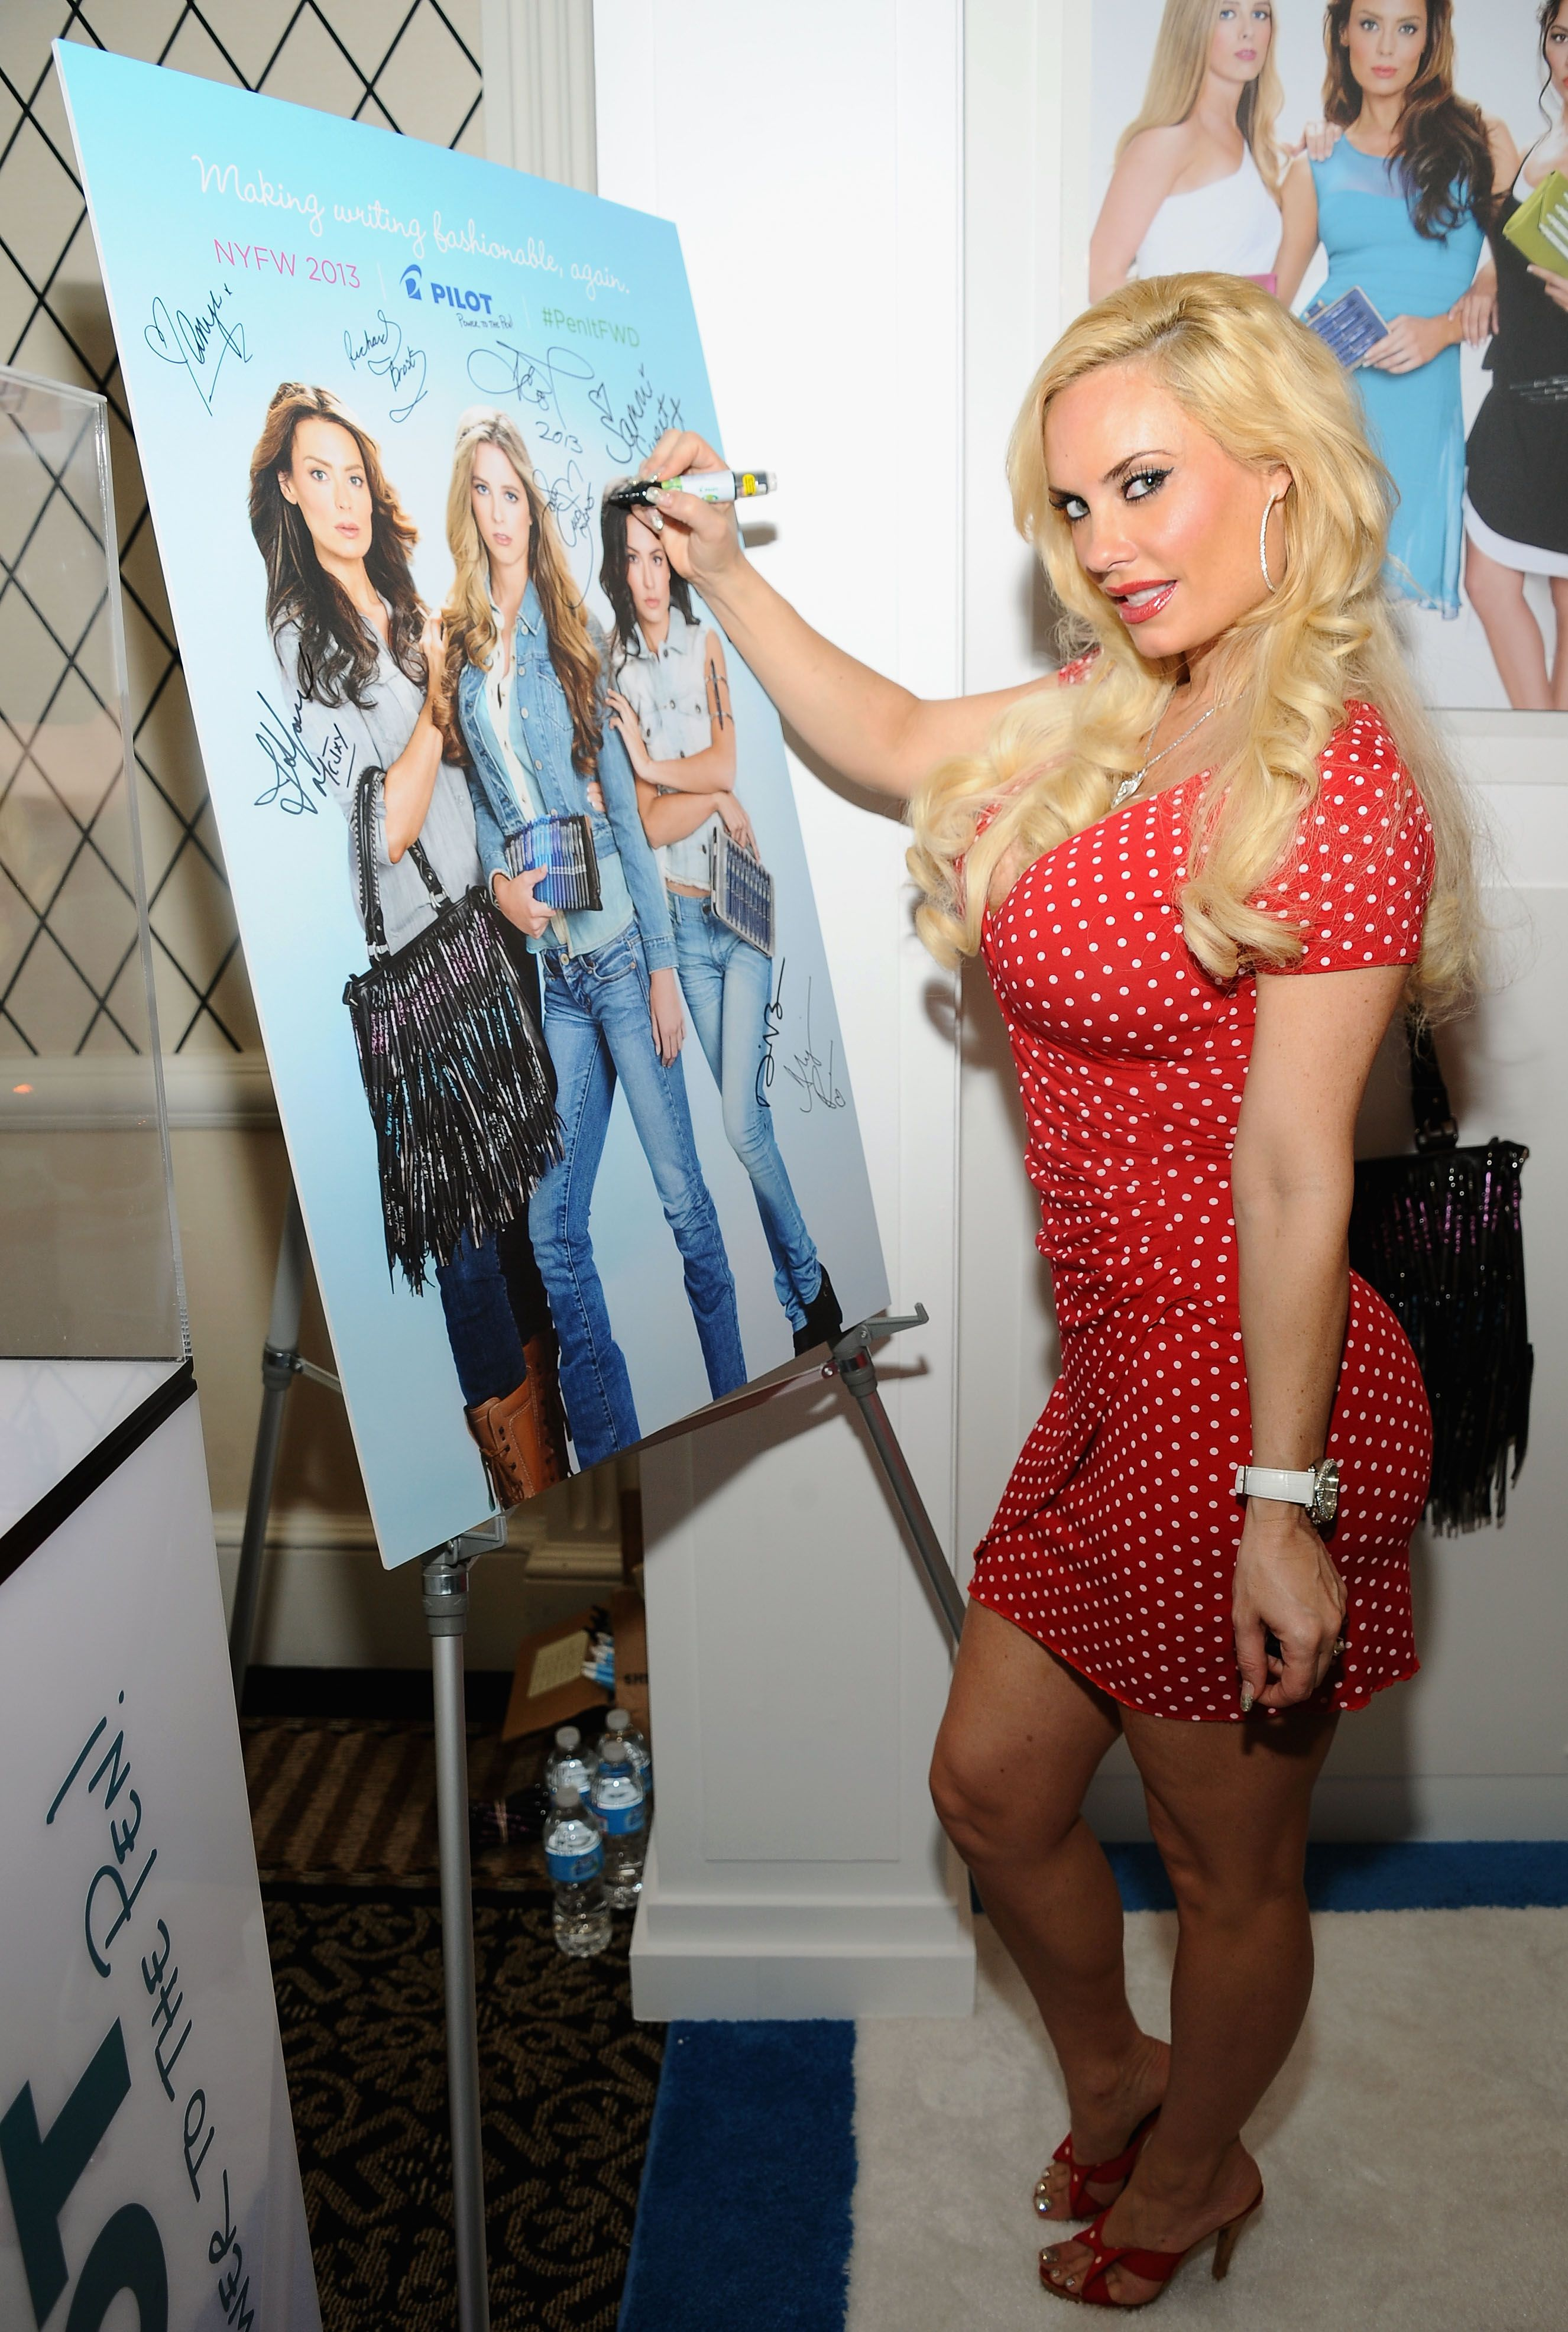 With coco austin short dress the intelligible